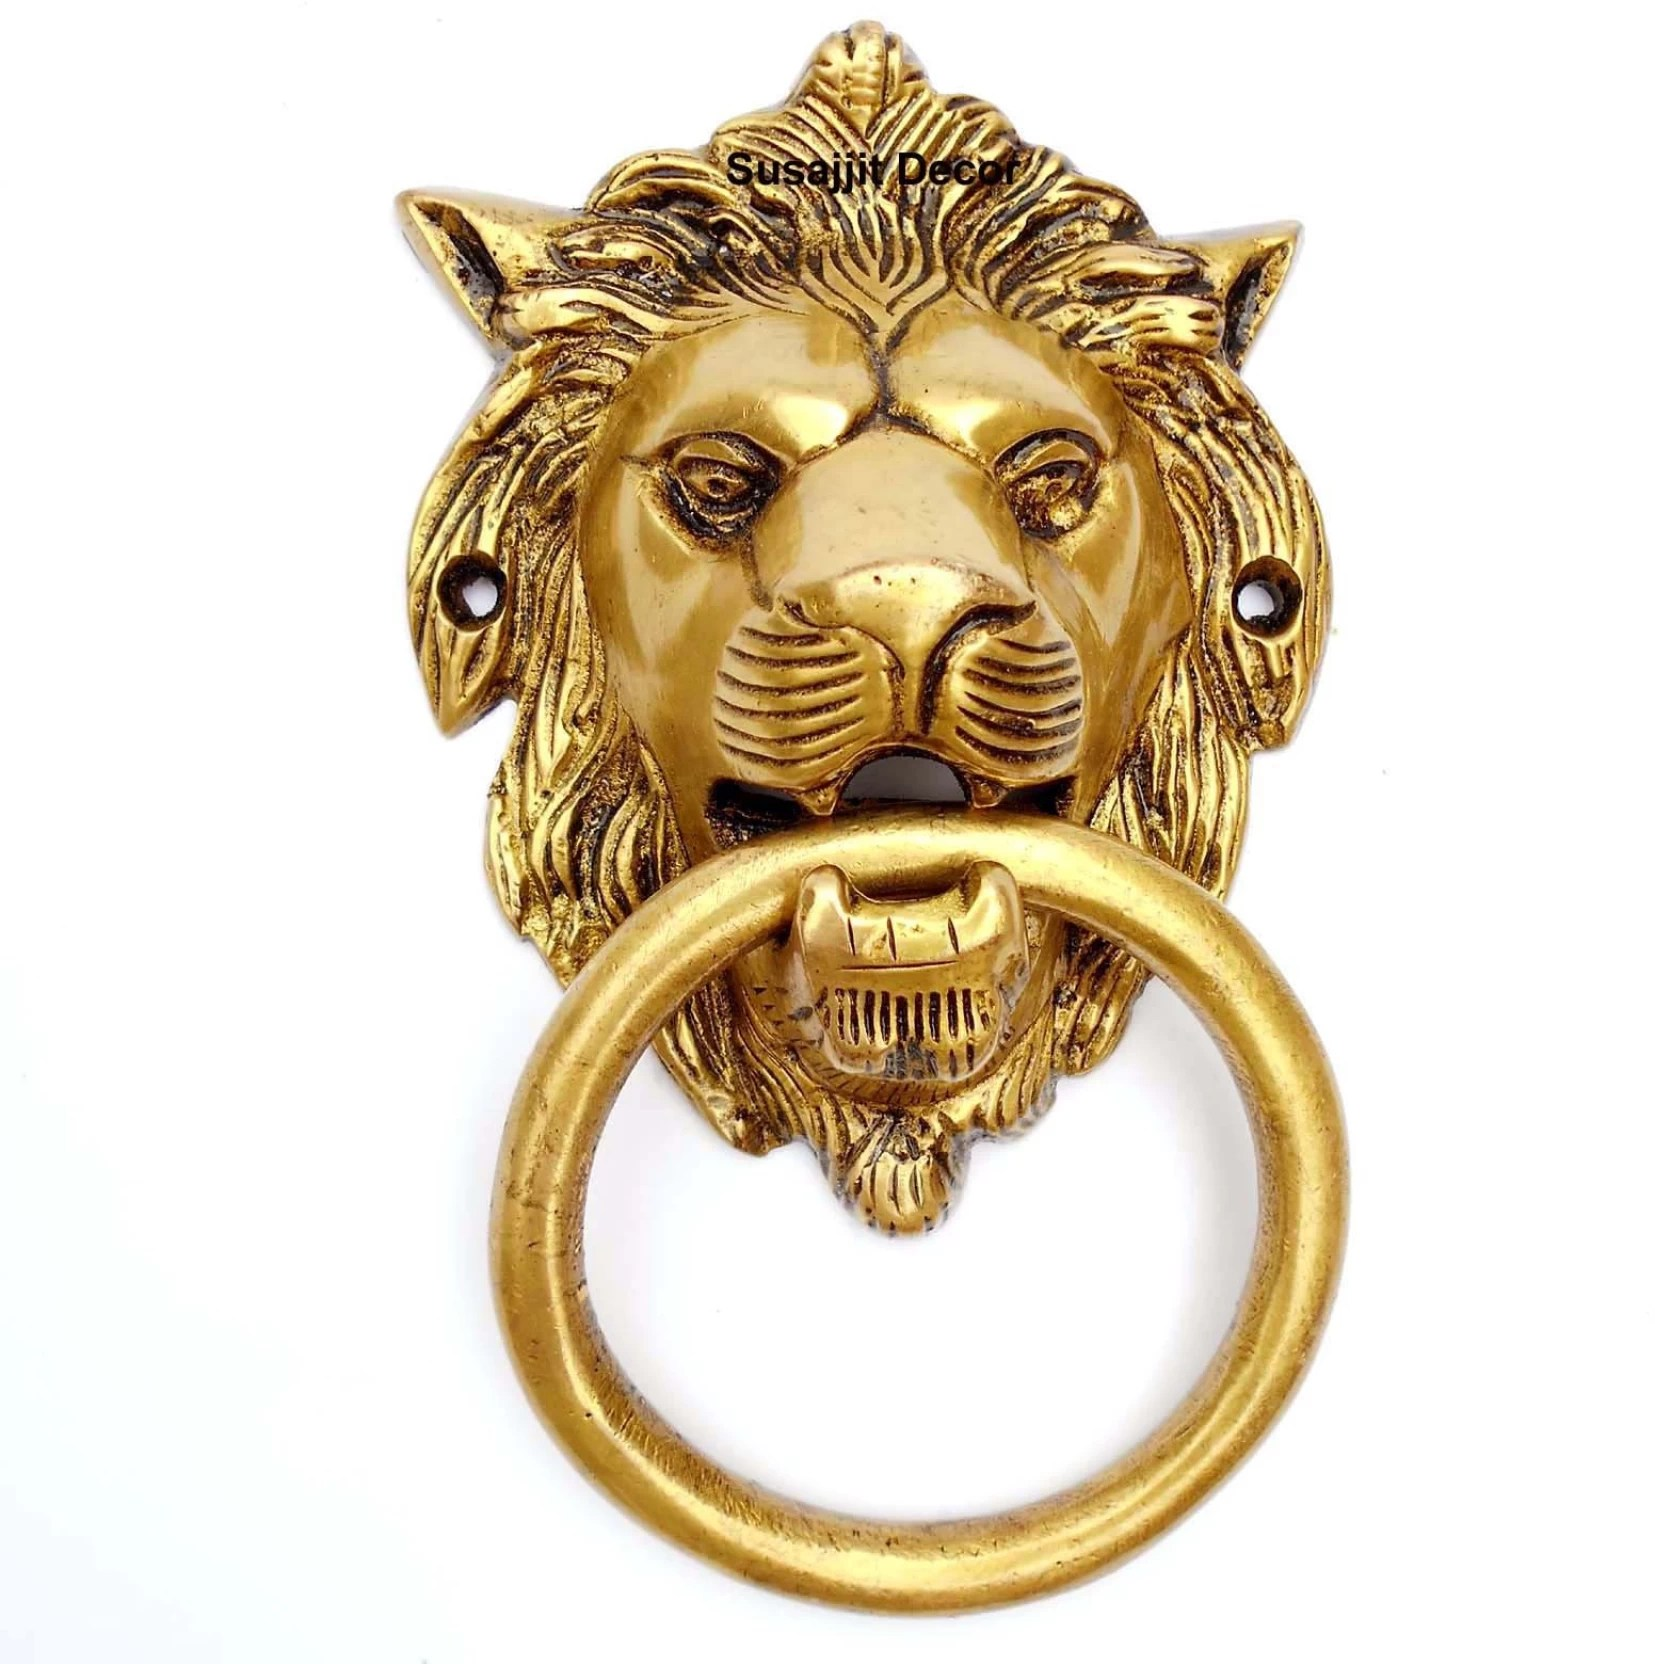 hight resolution of susajjit decor brass door knocker lion face in antique yellow finish for your door brass door knocker antique brass